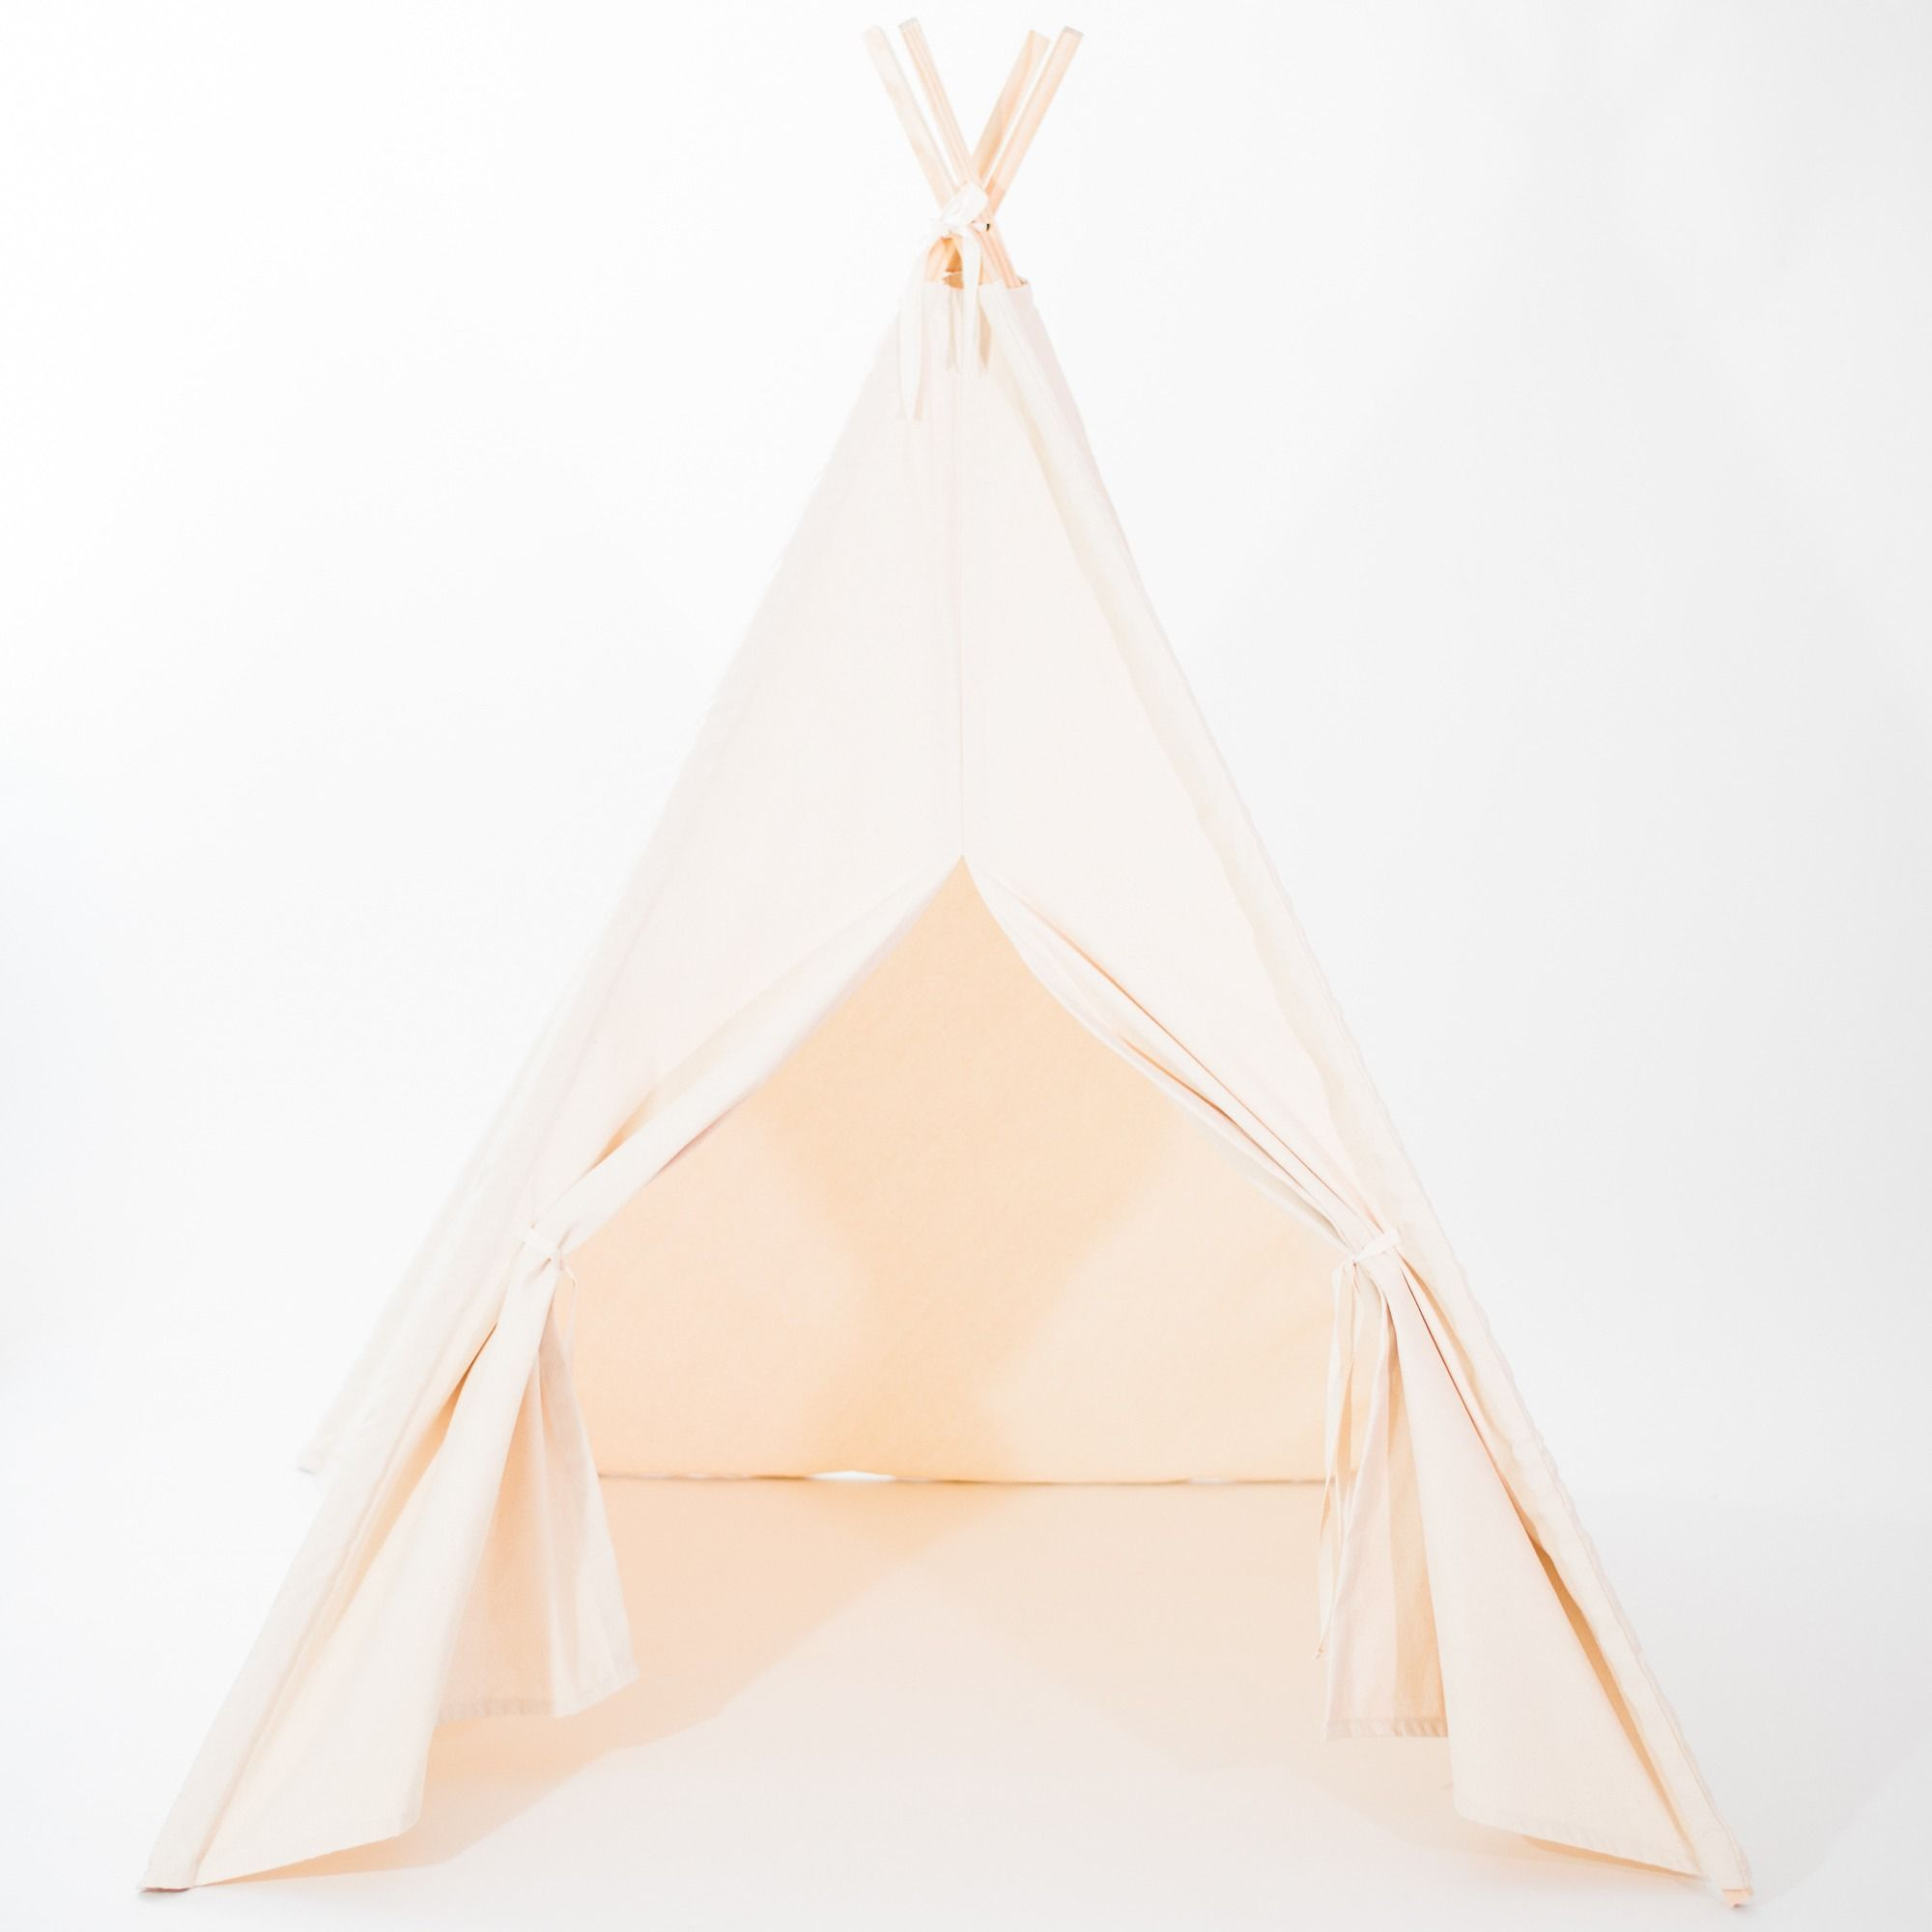 Natural or White Canvas Teepee Tent with Door Ties Also Available in ORGANIC FABRIC & Natural or White Canvas Teepee Tent with Door Ties Also Available ...